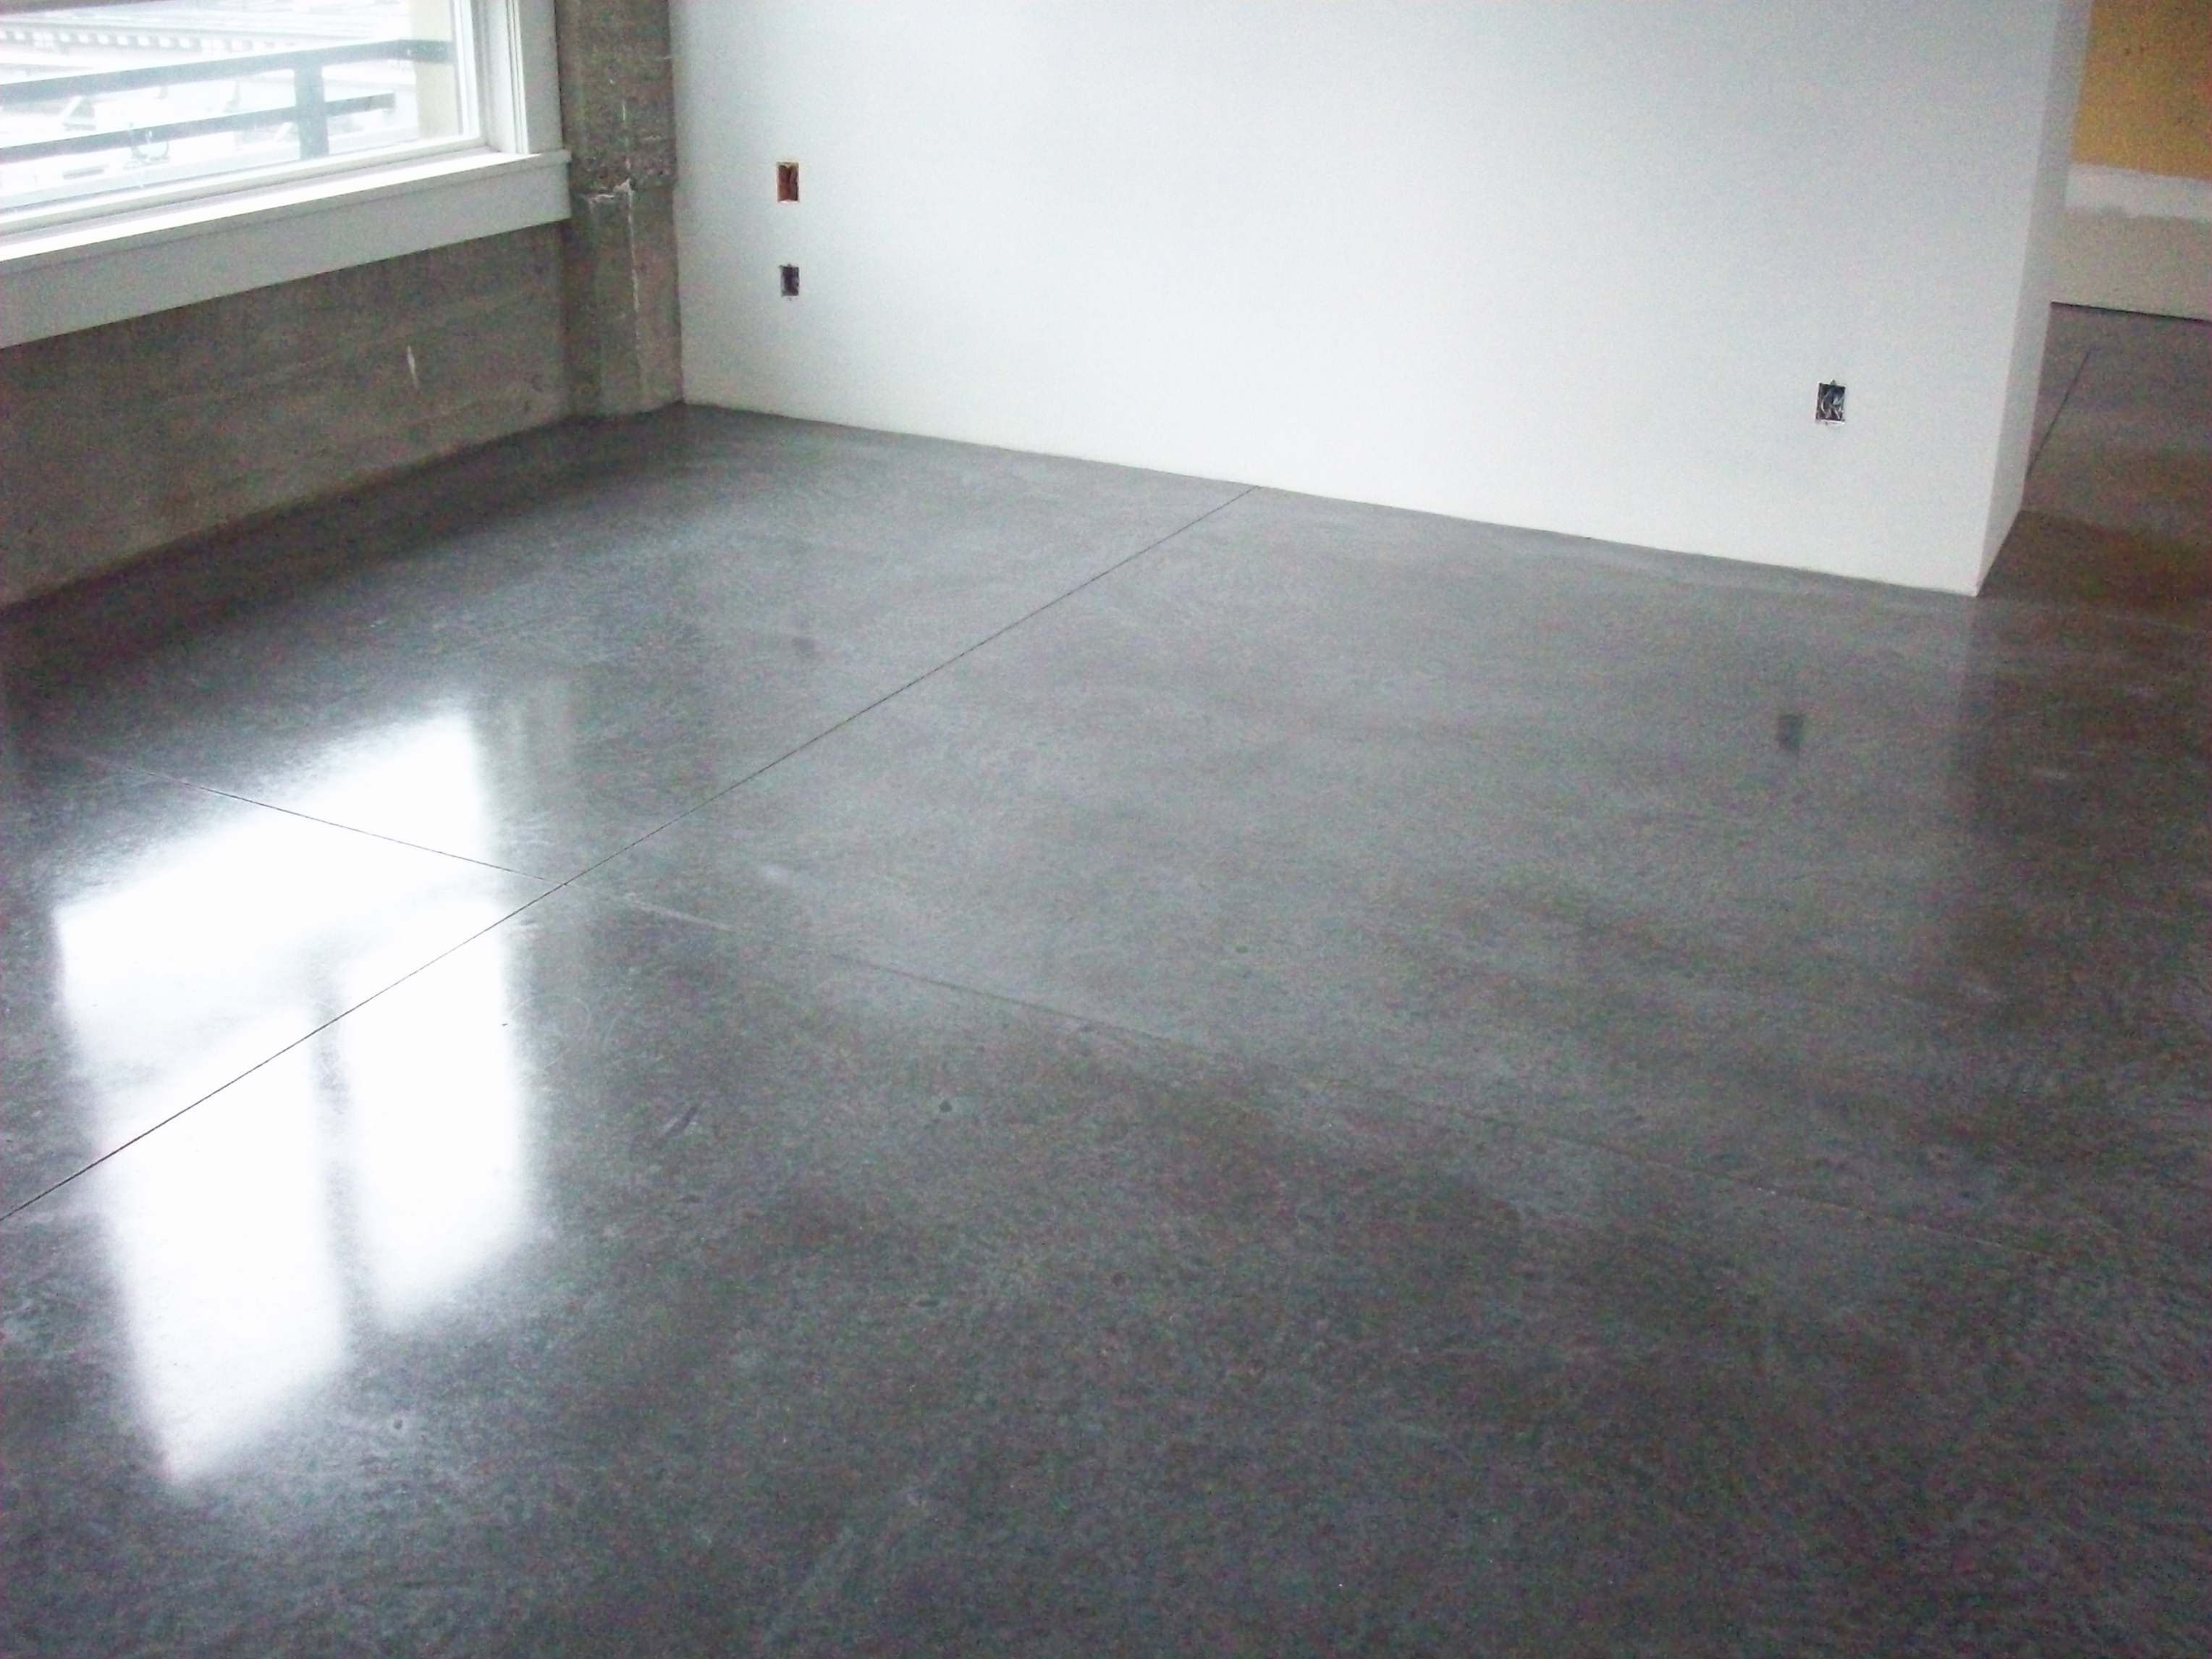 concrete floors | Diamond Buffing is an economical option for finishing  concrete .